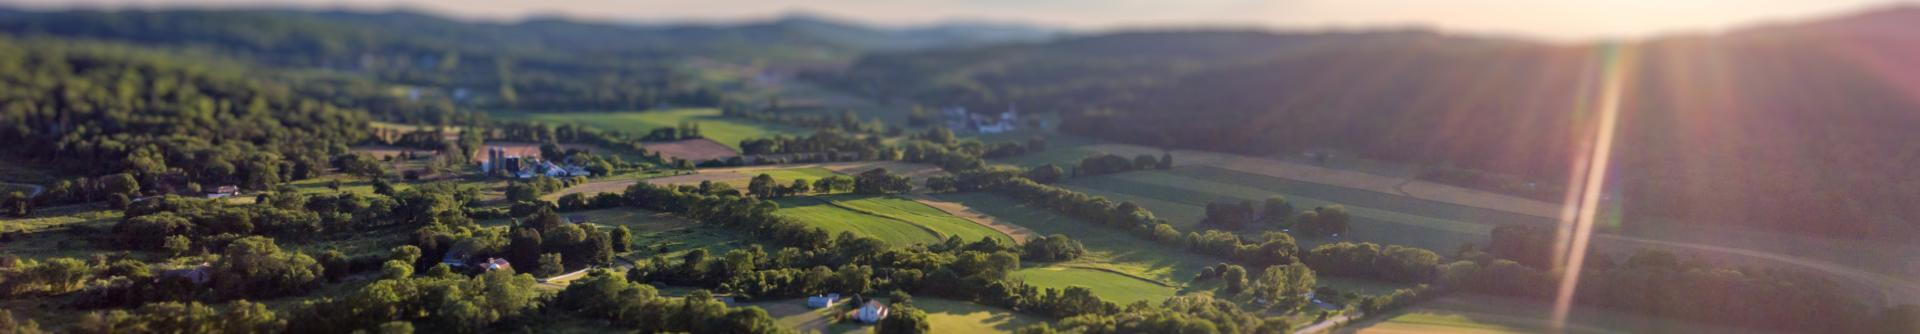 A photo illustration of a Lehigh Valley landscape